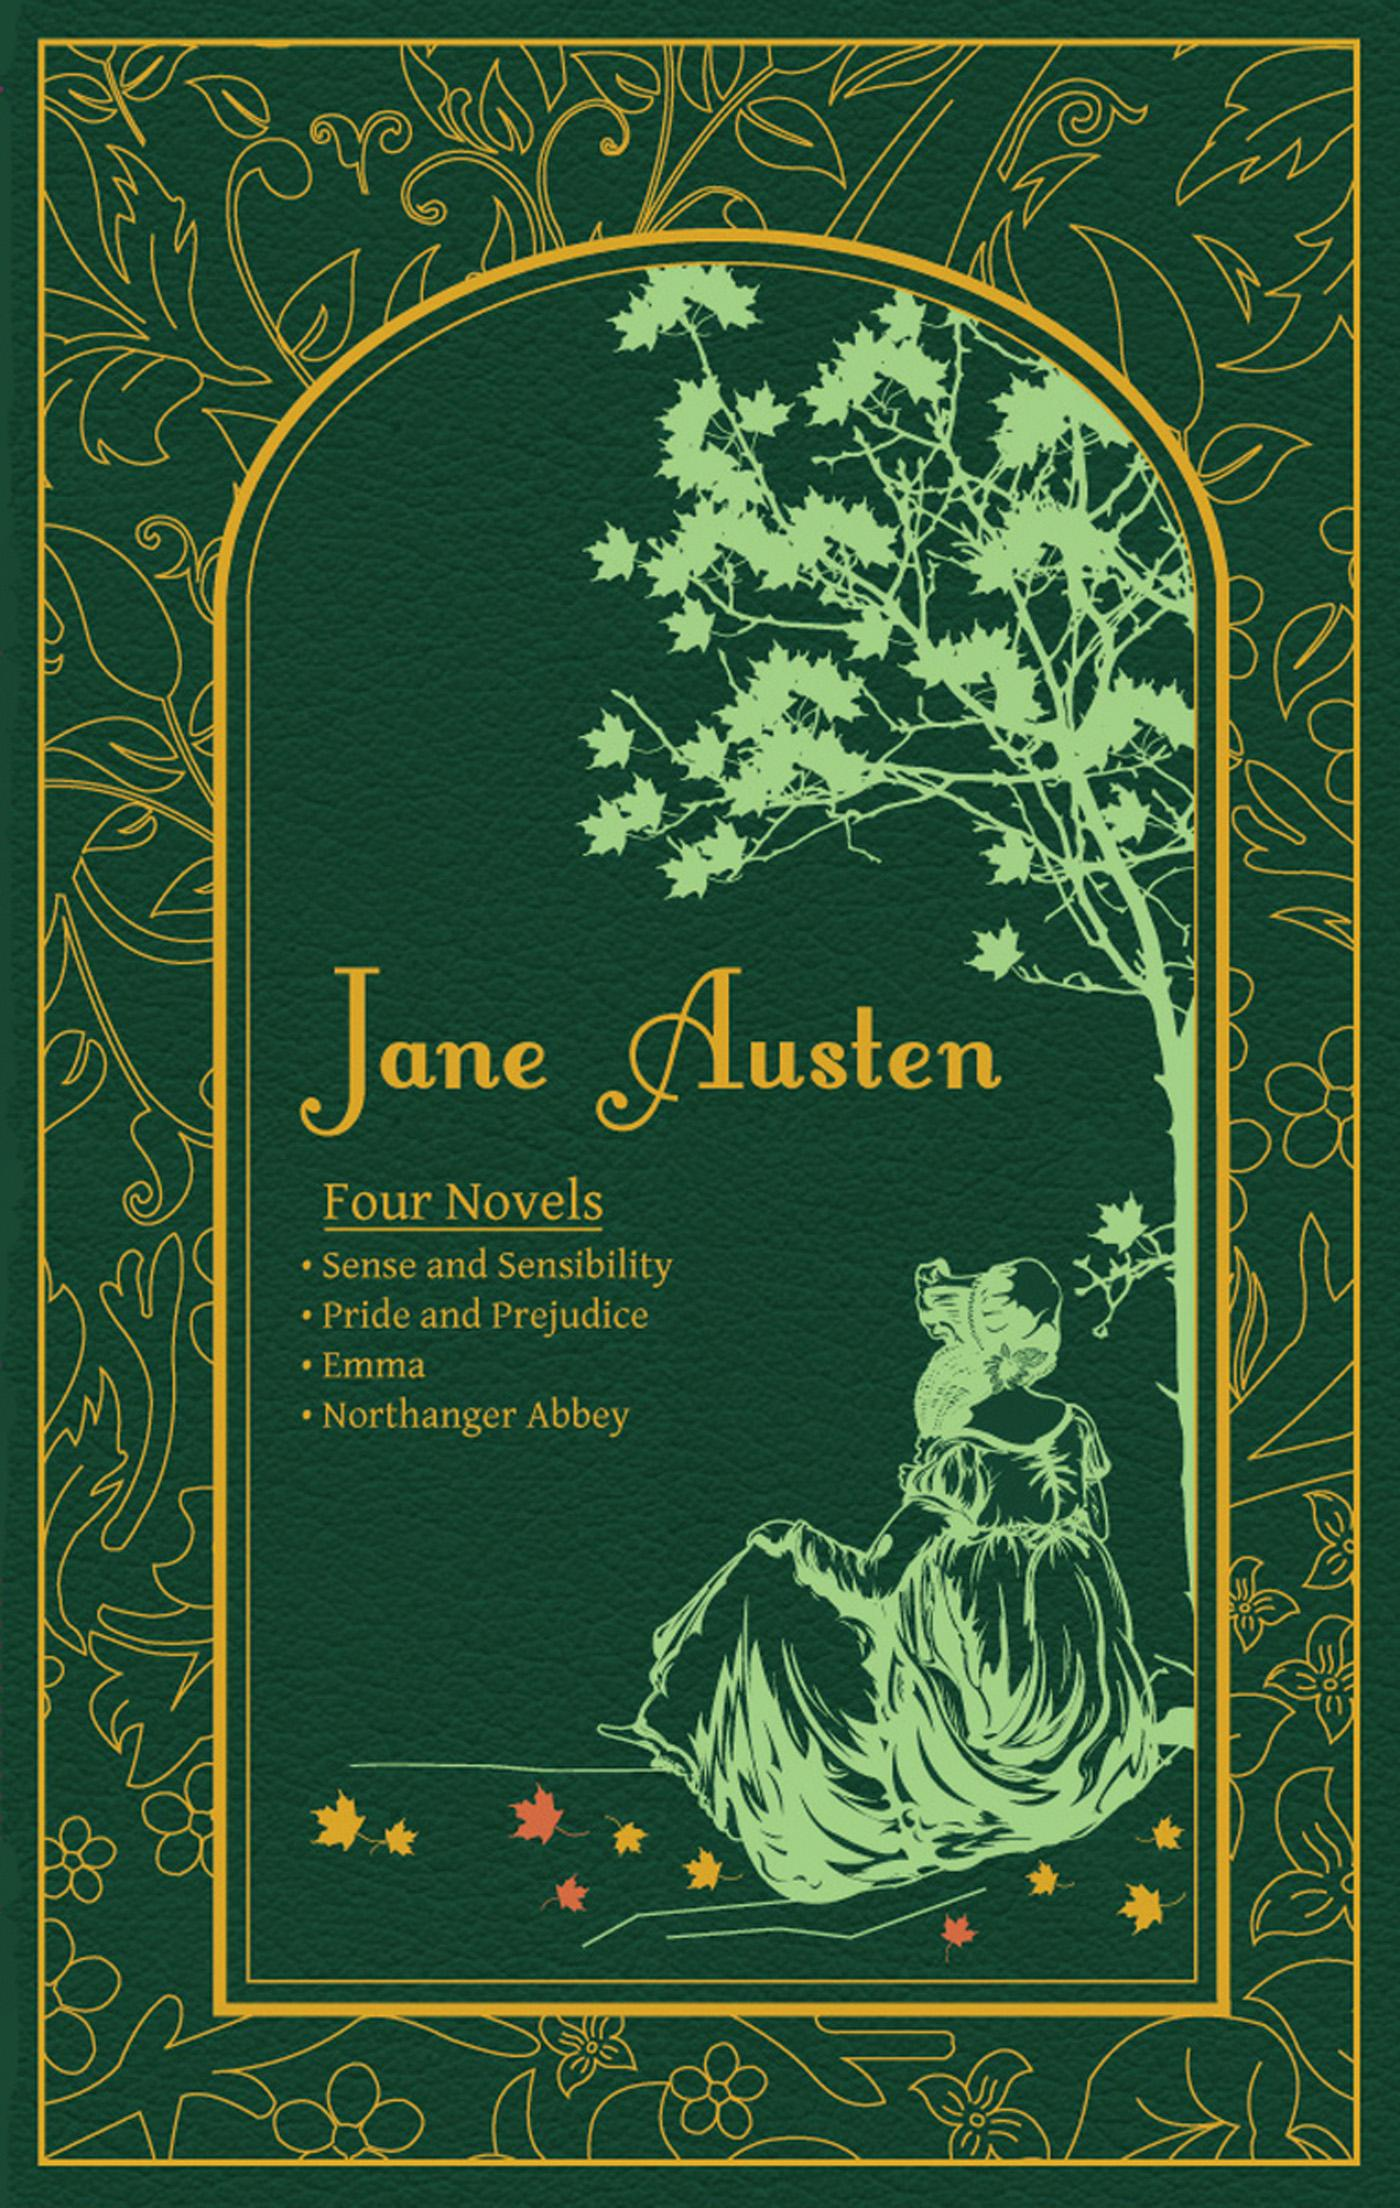 comparison jane austens novels Jane austen's minor writings (besides her letters) include the juvenilia (early short pieces written for the amusement of her family, before she had started on any of her novels), several incomplete beginnings of novels, lady susan, the plan of a novel, some light verse, some prayers, and a few other miscellaneous fragments.